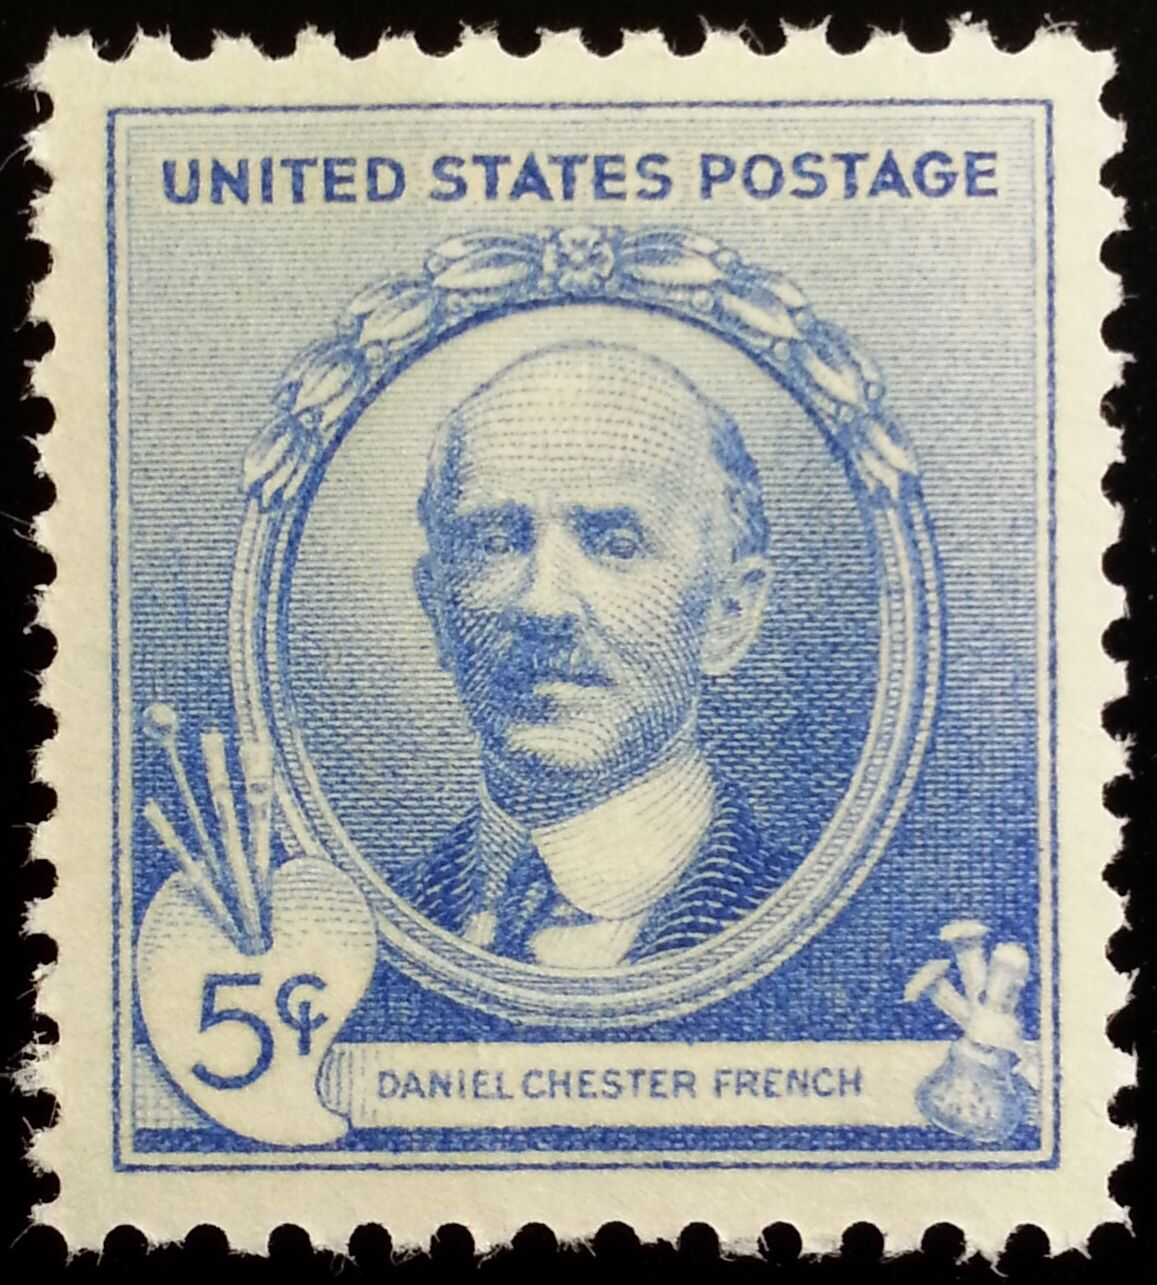 1940 5c Daniel Chester French Acclaimed American Sculpt